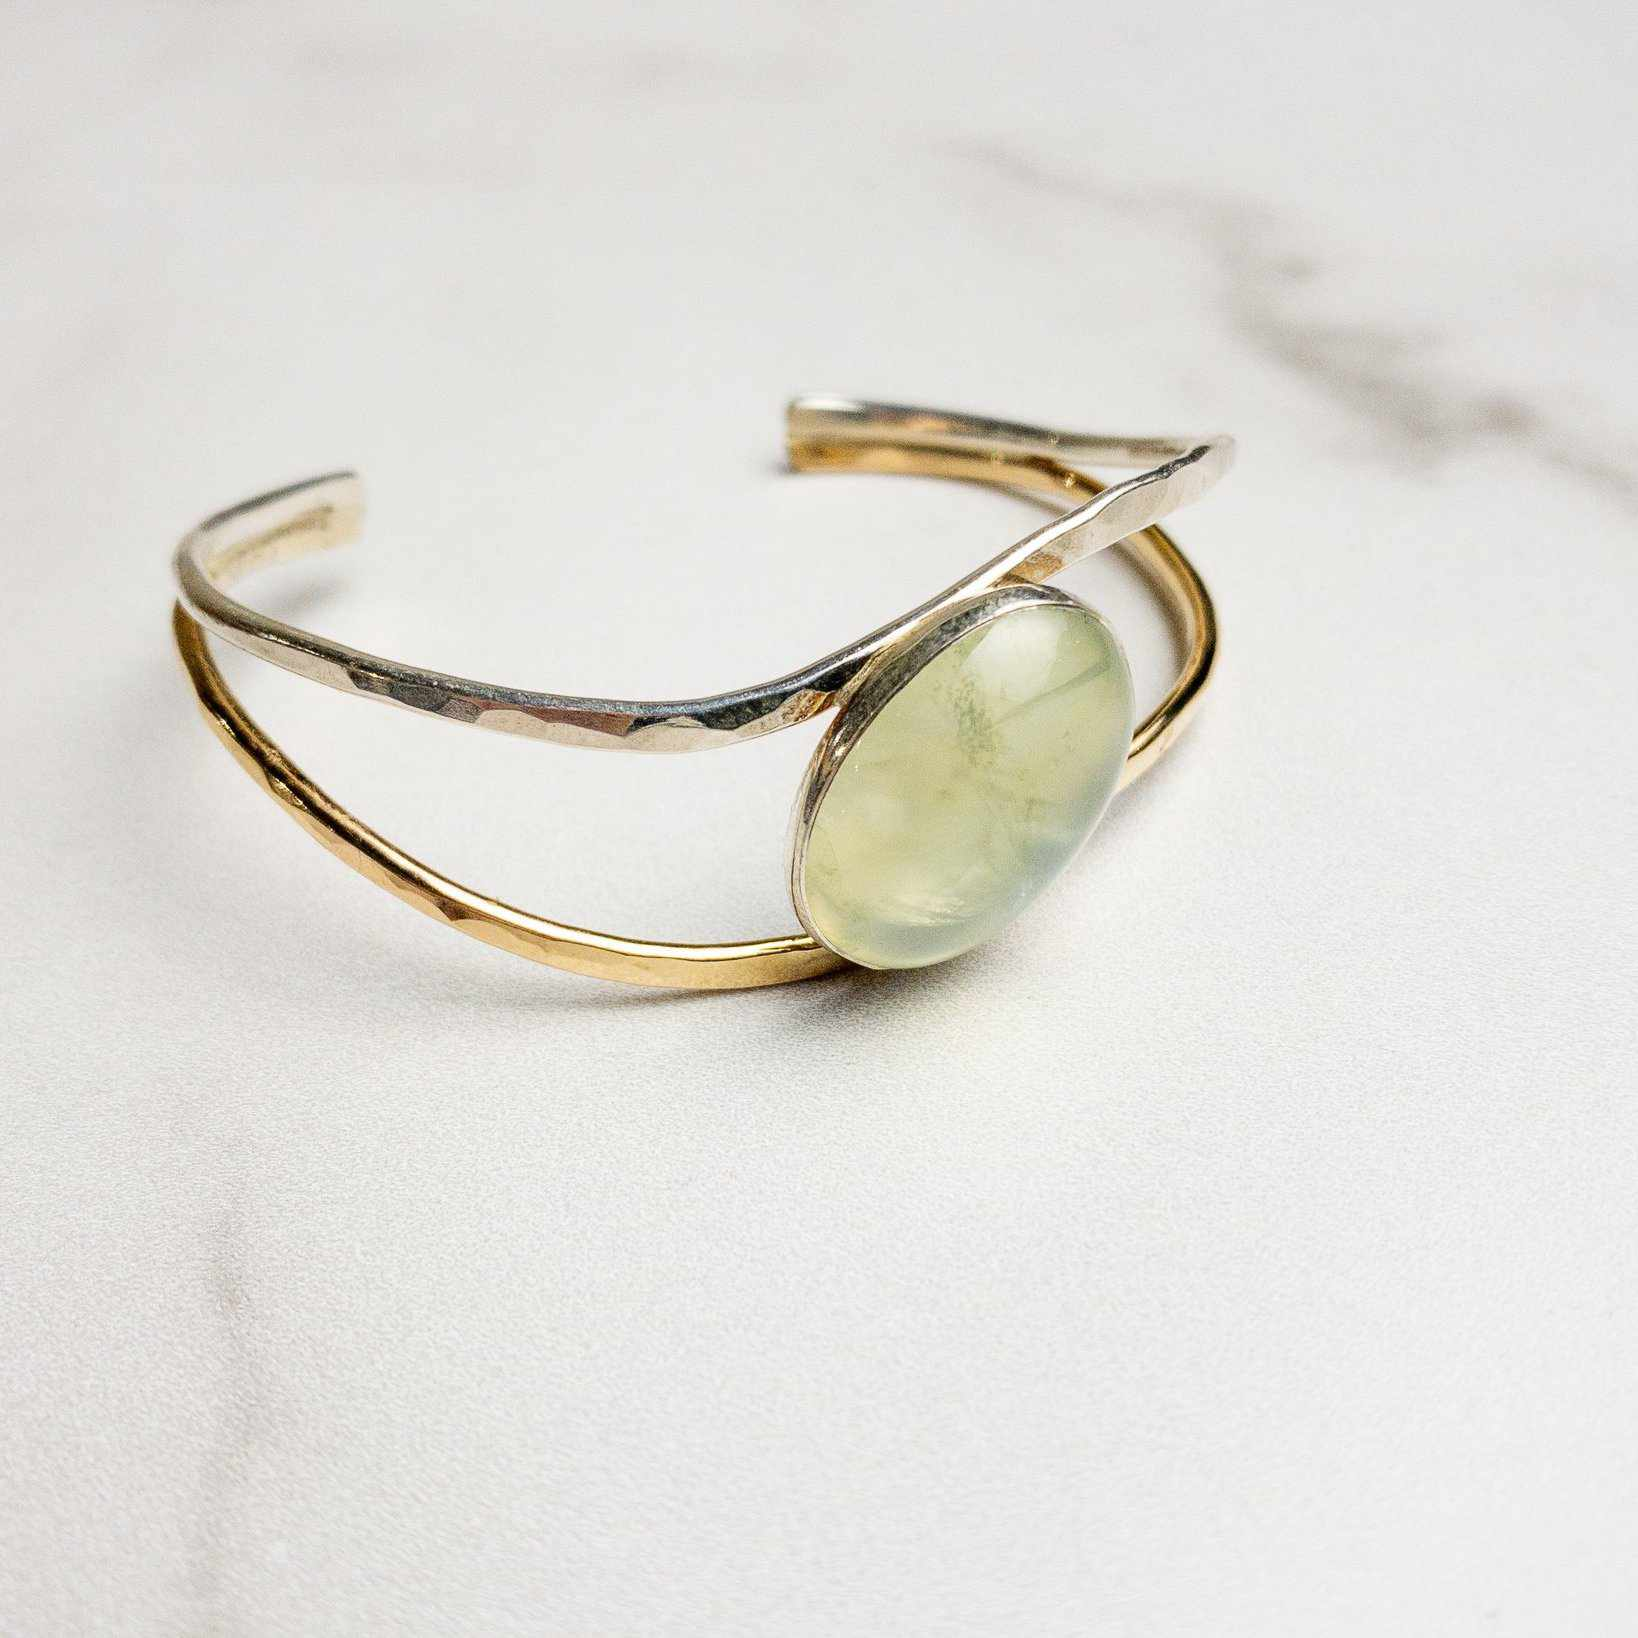 Twisted Sterling Silver and Gold Filled Cuff with Large Oval Opal - Edgecomb Potters